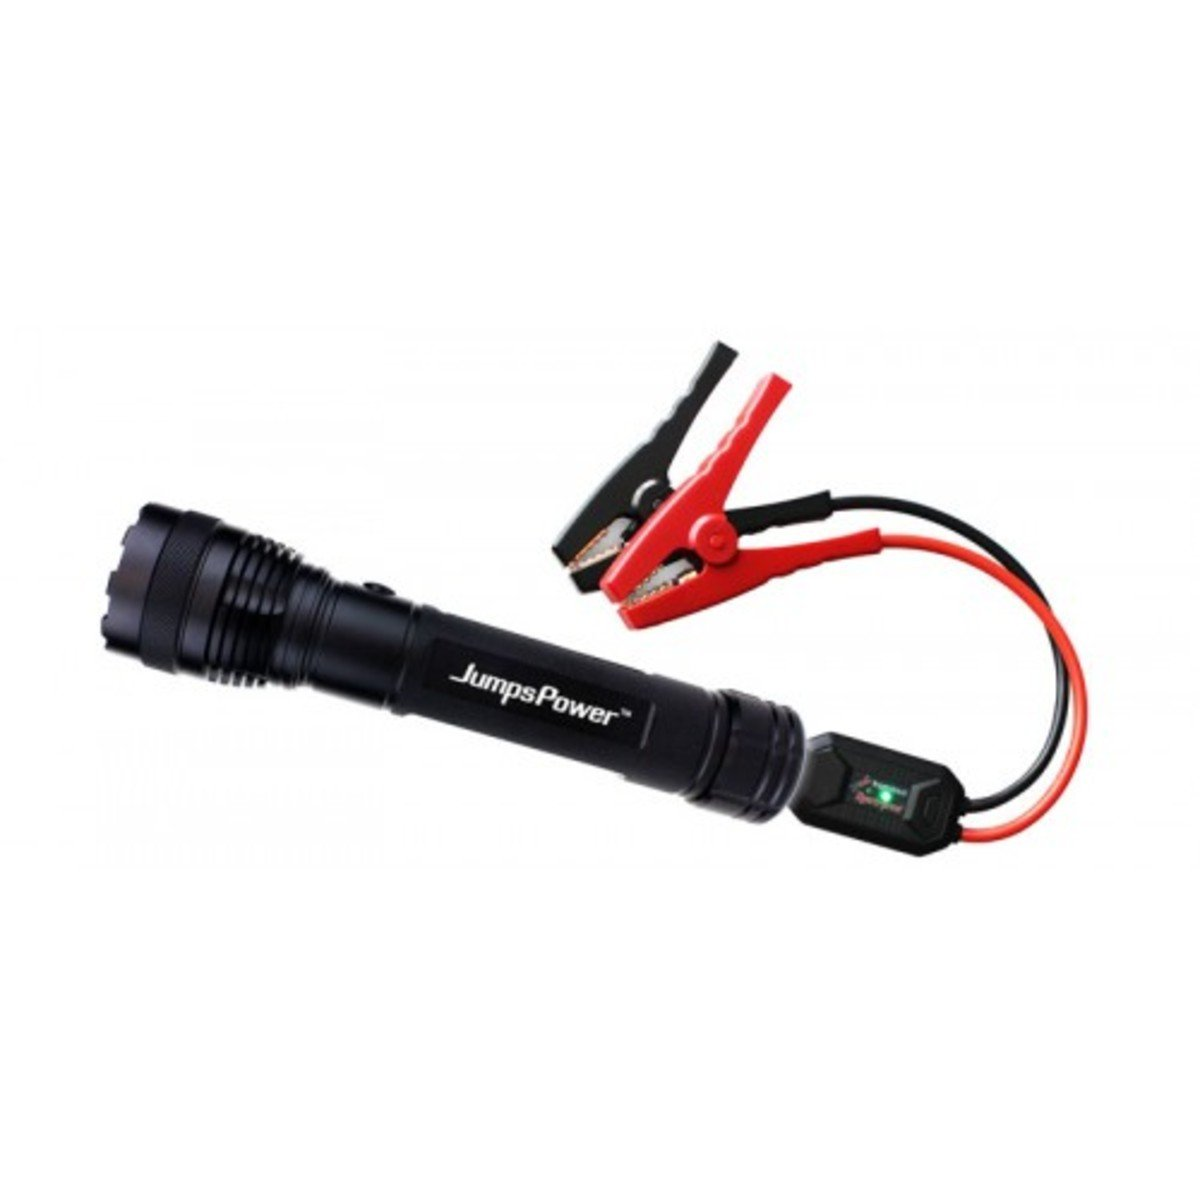 AMG5T Powersports Battery - Cree T6 LED Torch Pocket Jump Starter With Ingenious Spark-proof clamp